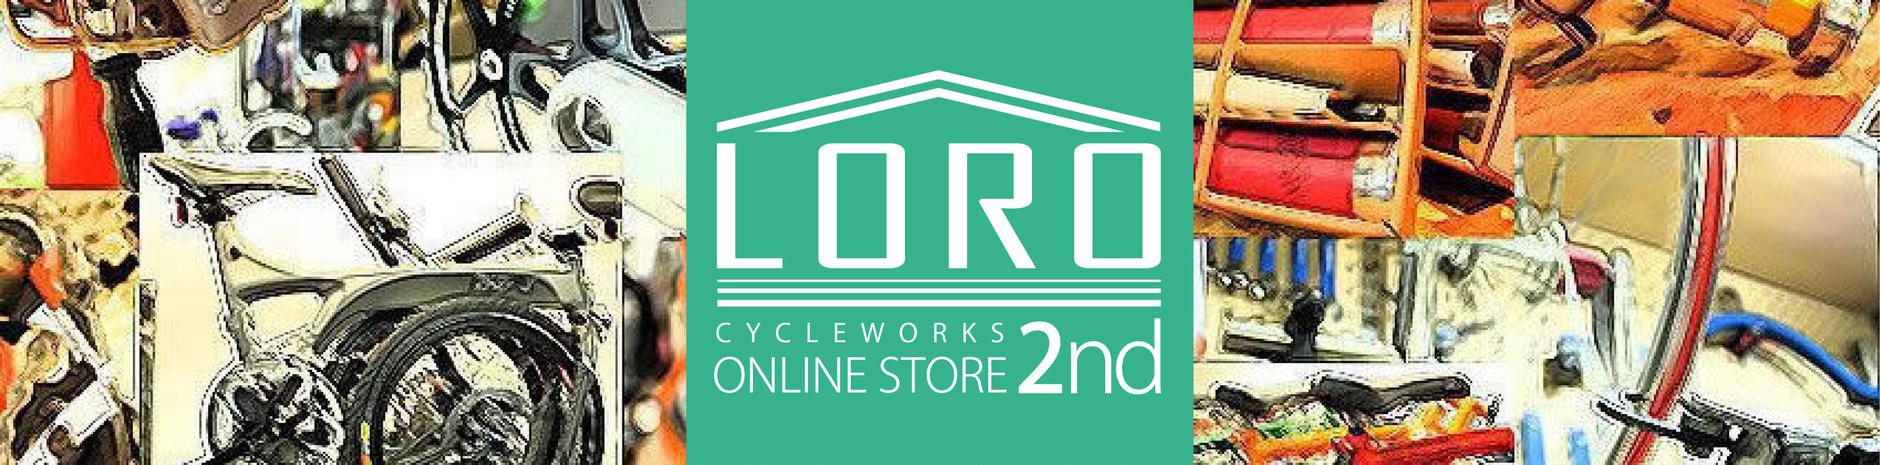 LORO CYCLE WORKS ONLINE STORE 2nd